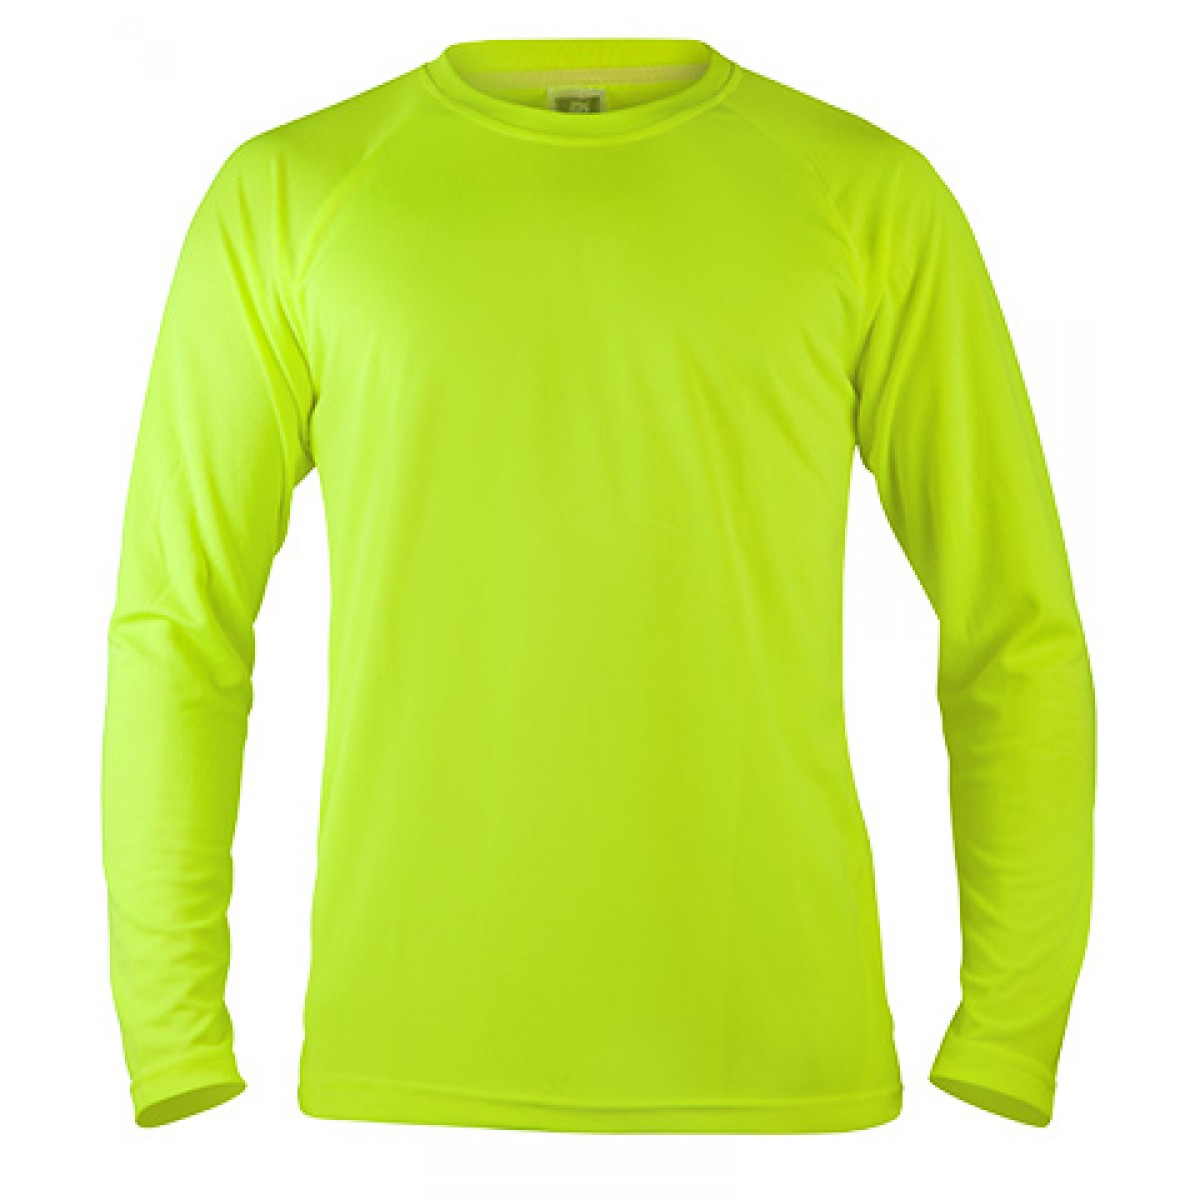 Long Sleeve Mesh Performance T-shirt-Neon Green-S